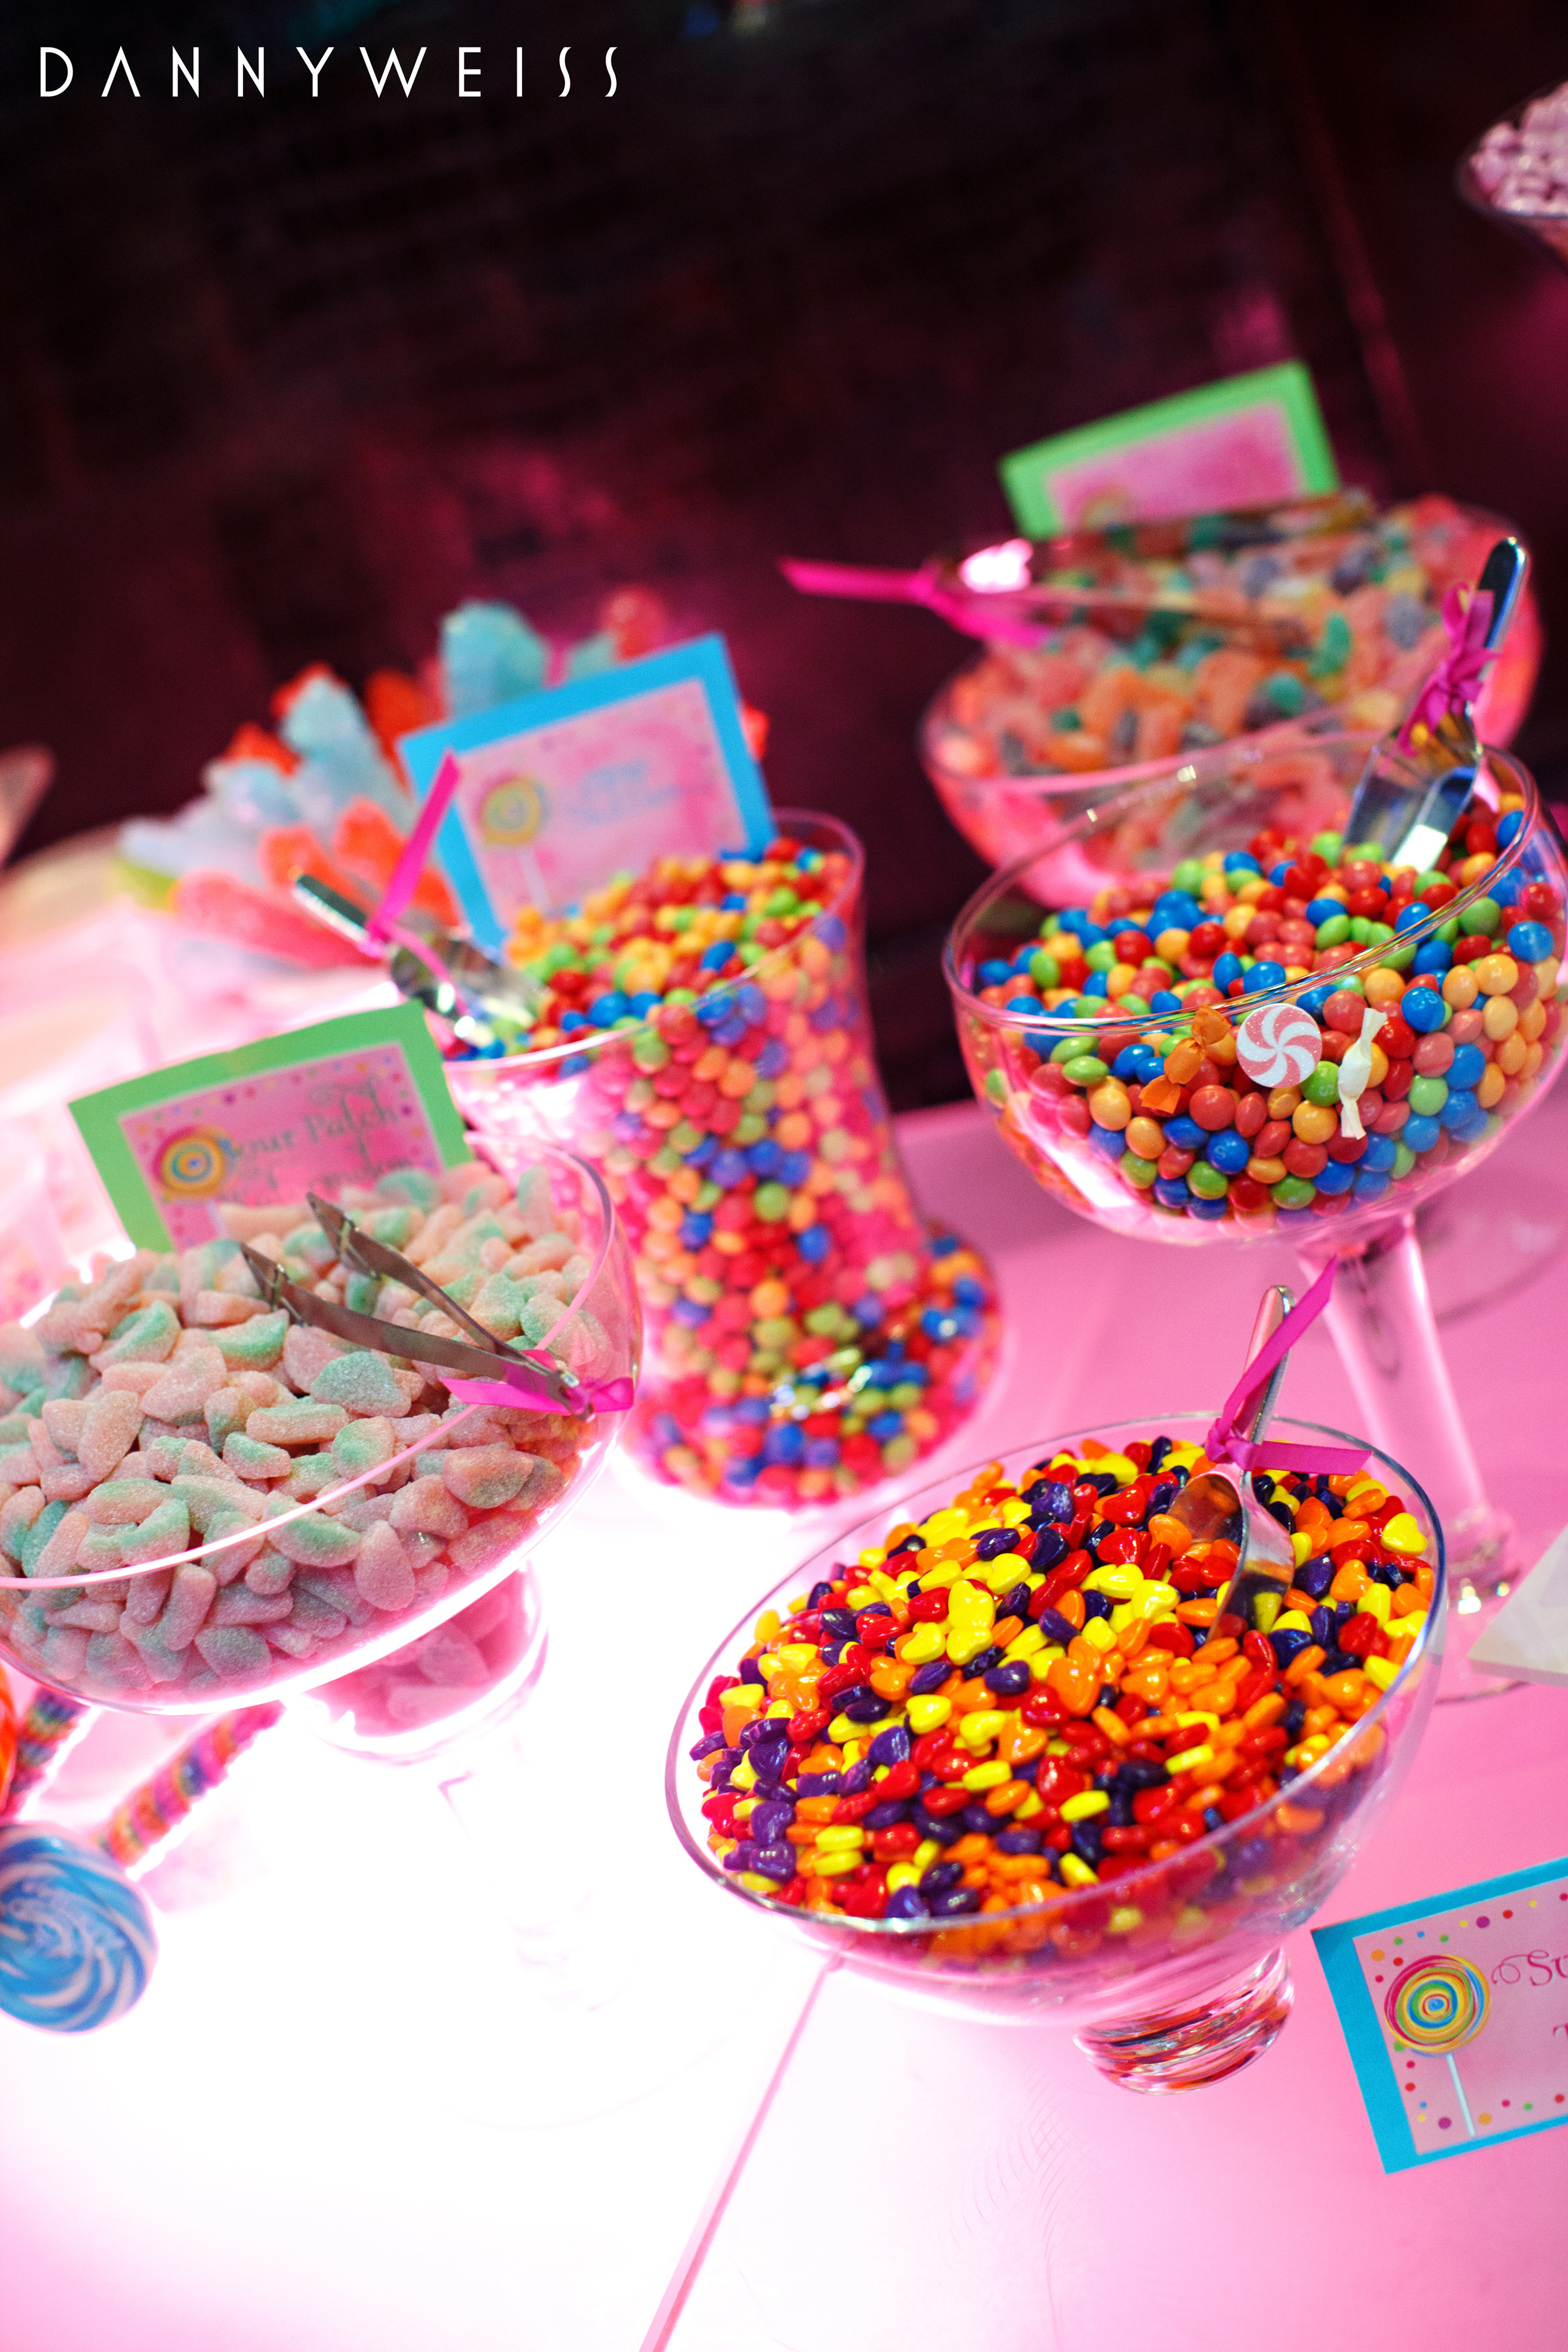 Candy sweet treat dessert table mitzvah madness cw distinctive designs - Candyland party table decorations ...